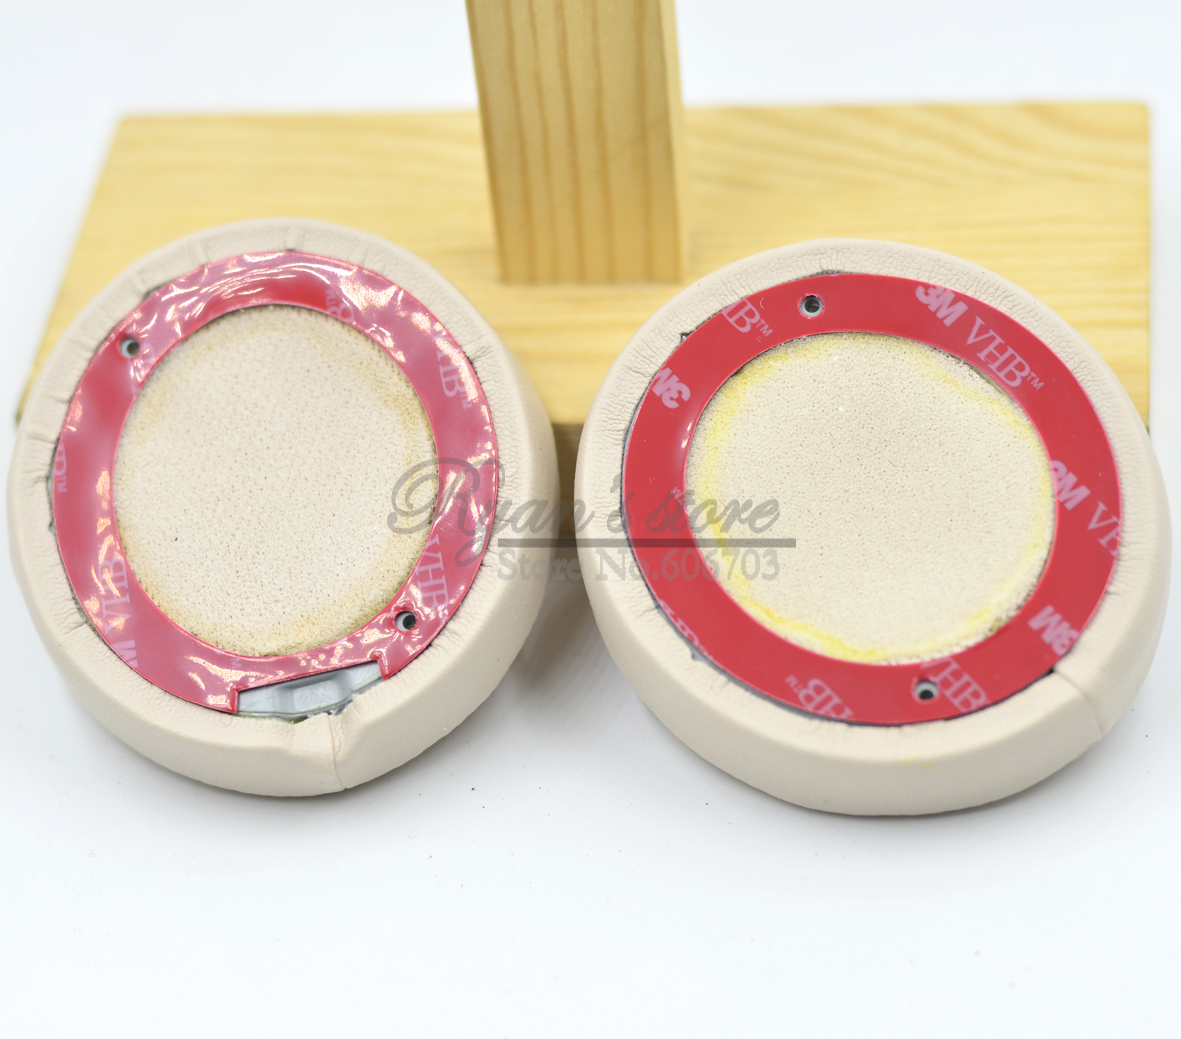 New Gold Ear pads cushion covers for solo 3 solo3.0 wireless headphones